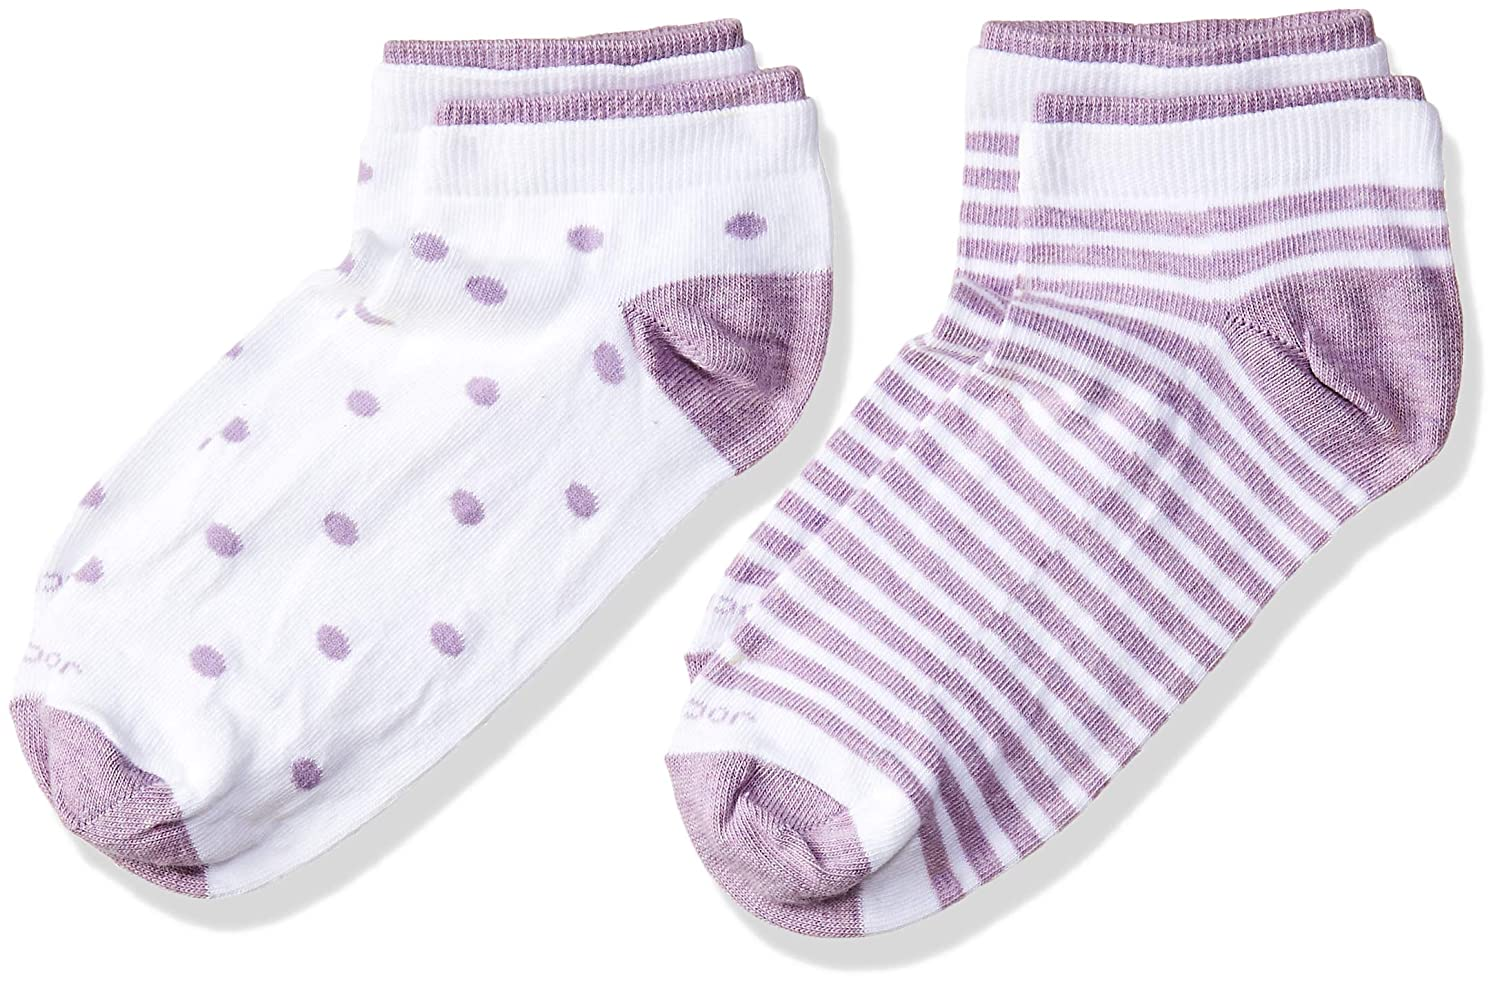 Jockey Women's Socks(Colors & Print May Vary)(color may vary)